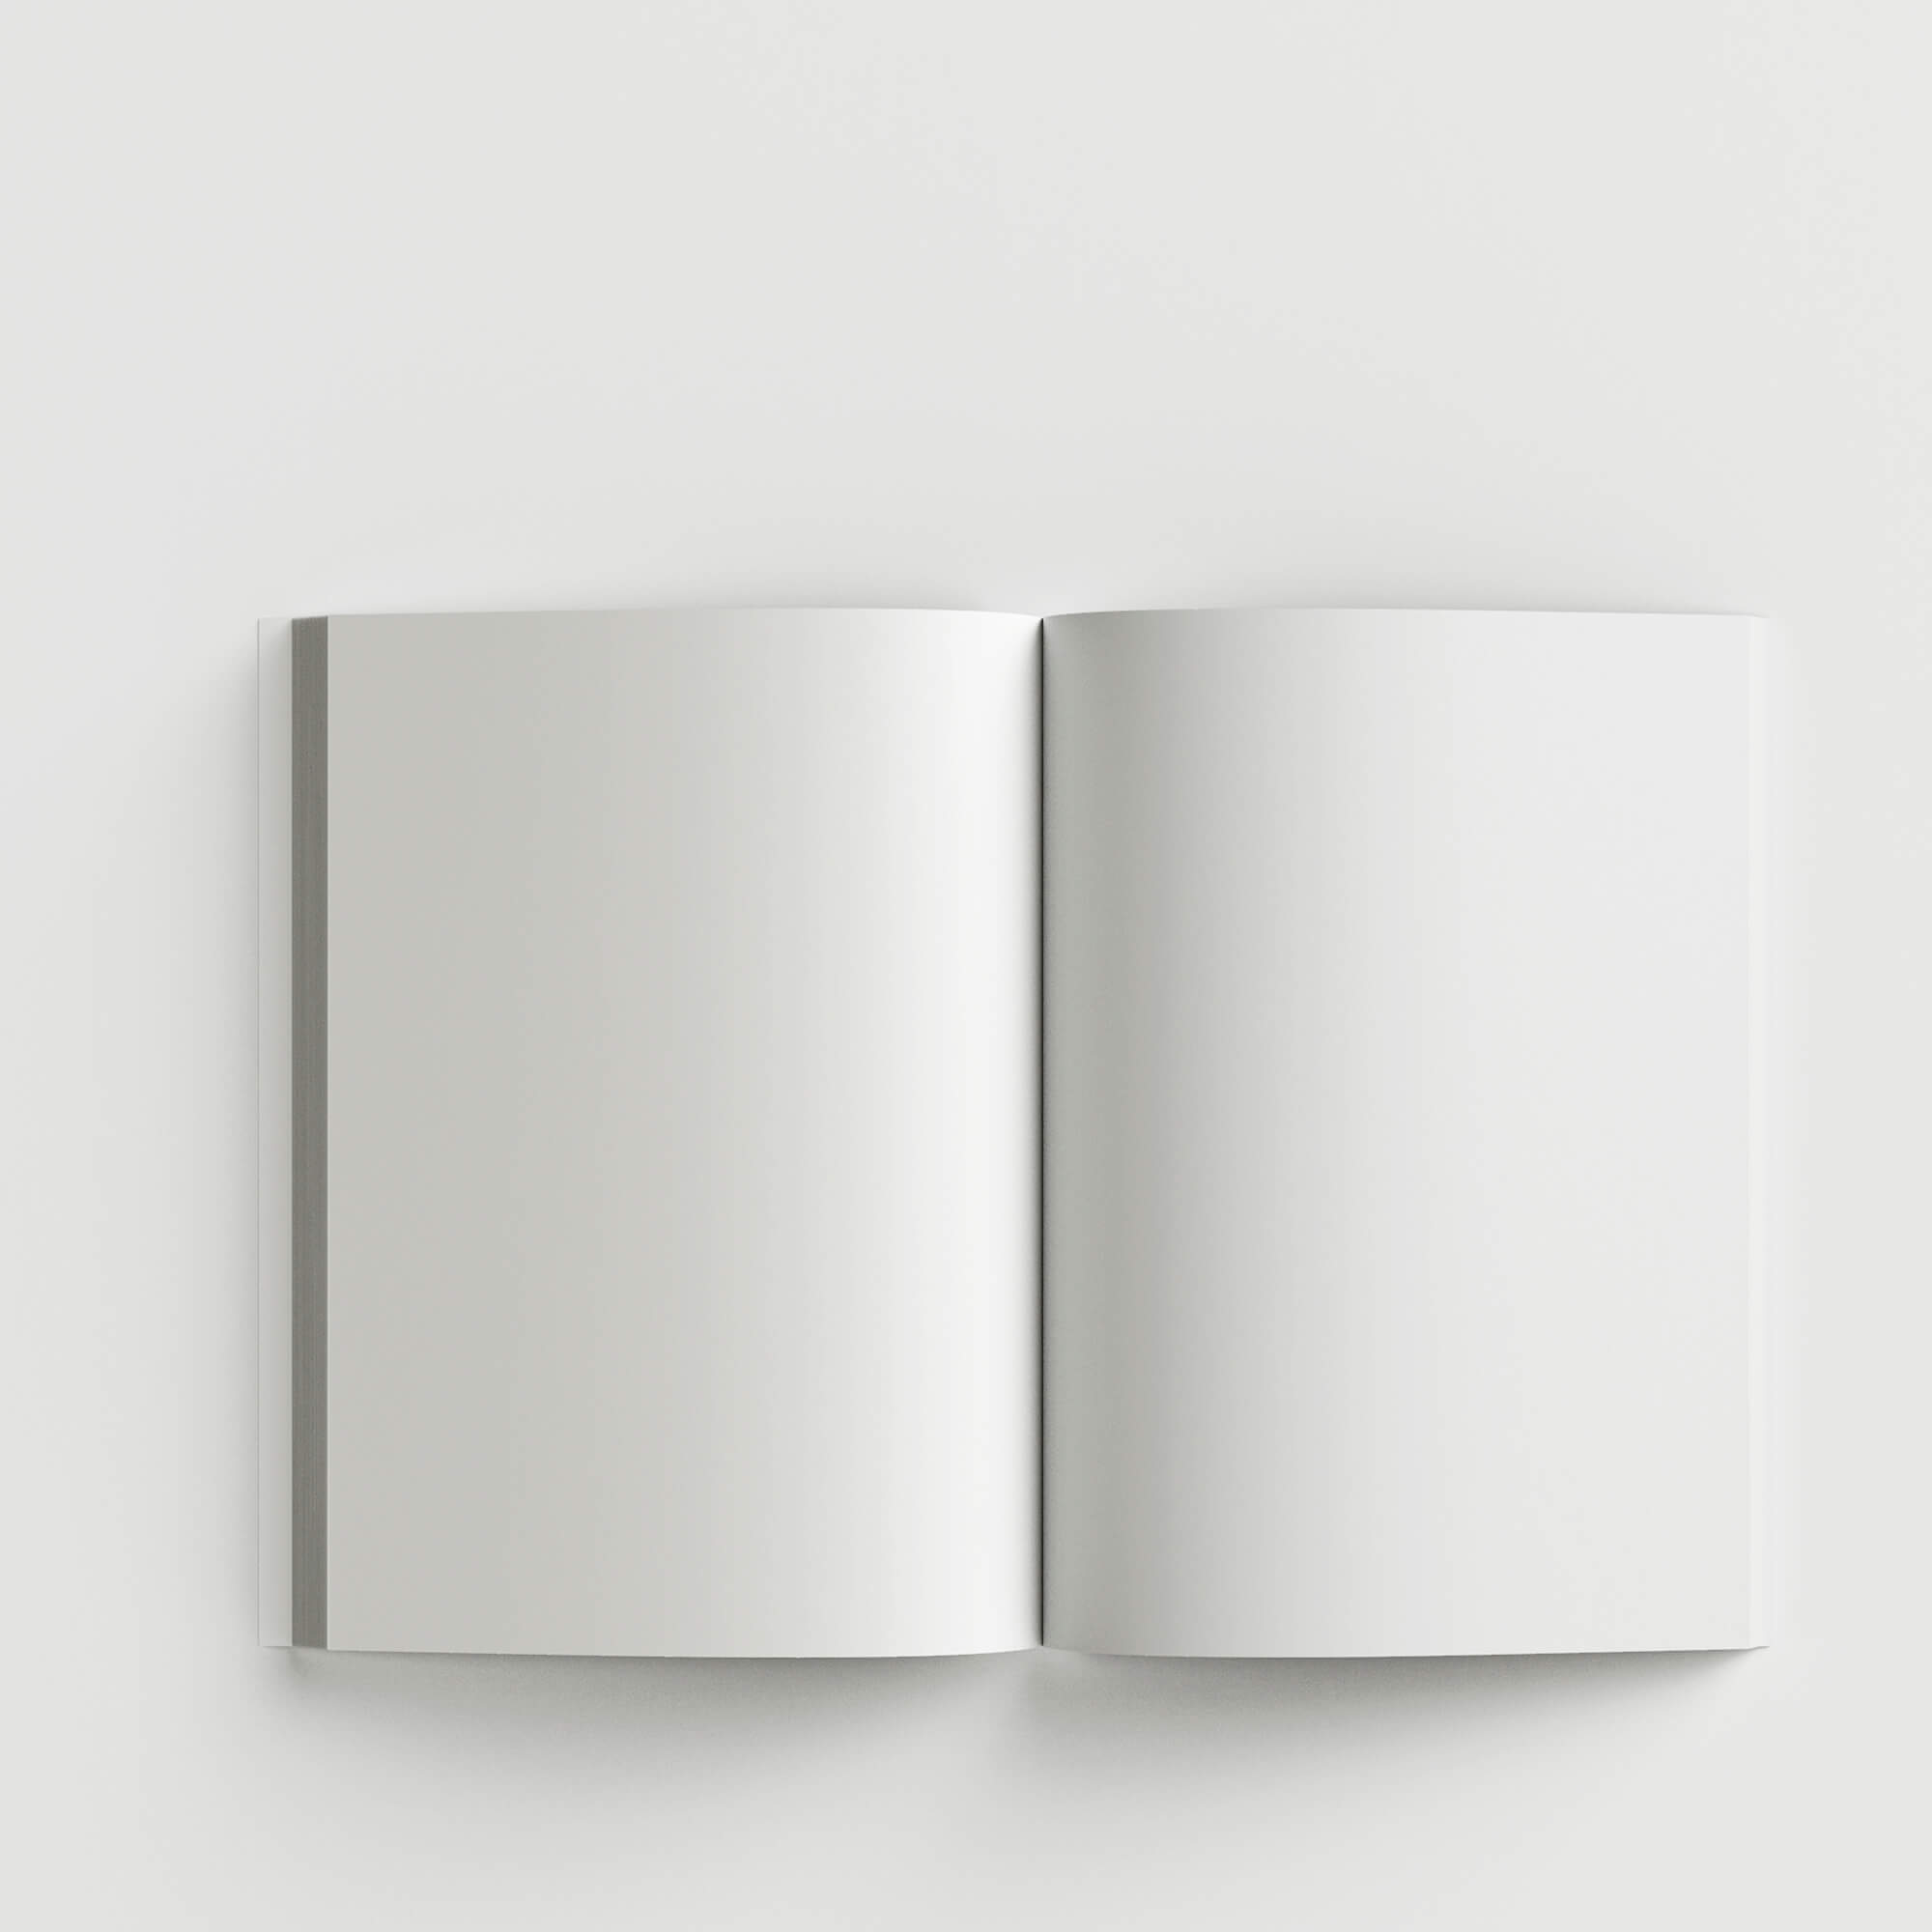 Blank Free Flip Book Mockup PSD Template